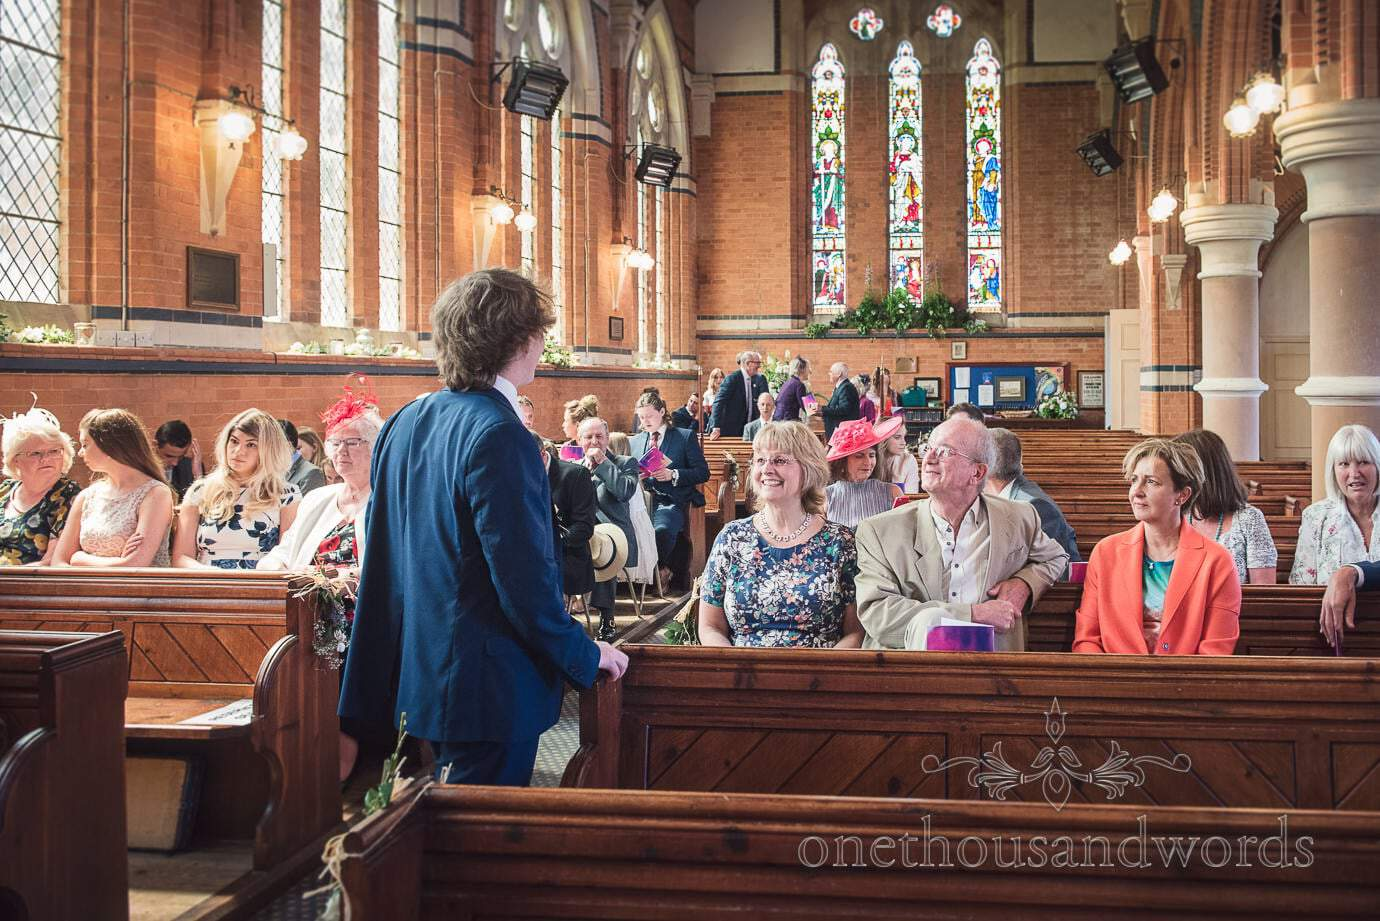 Wedding guests arrive waiting in church pews at red brick church wedding